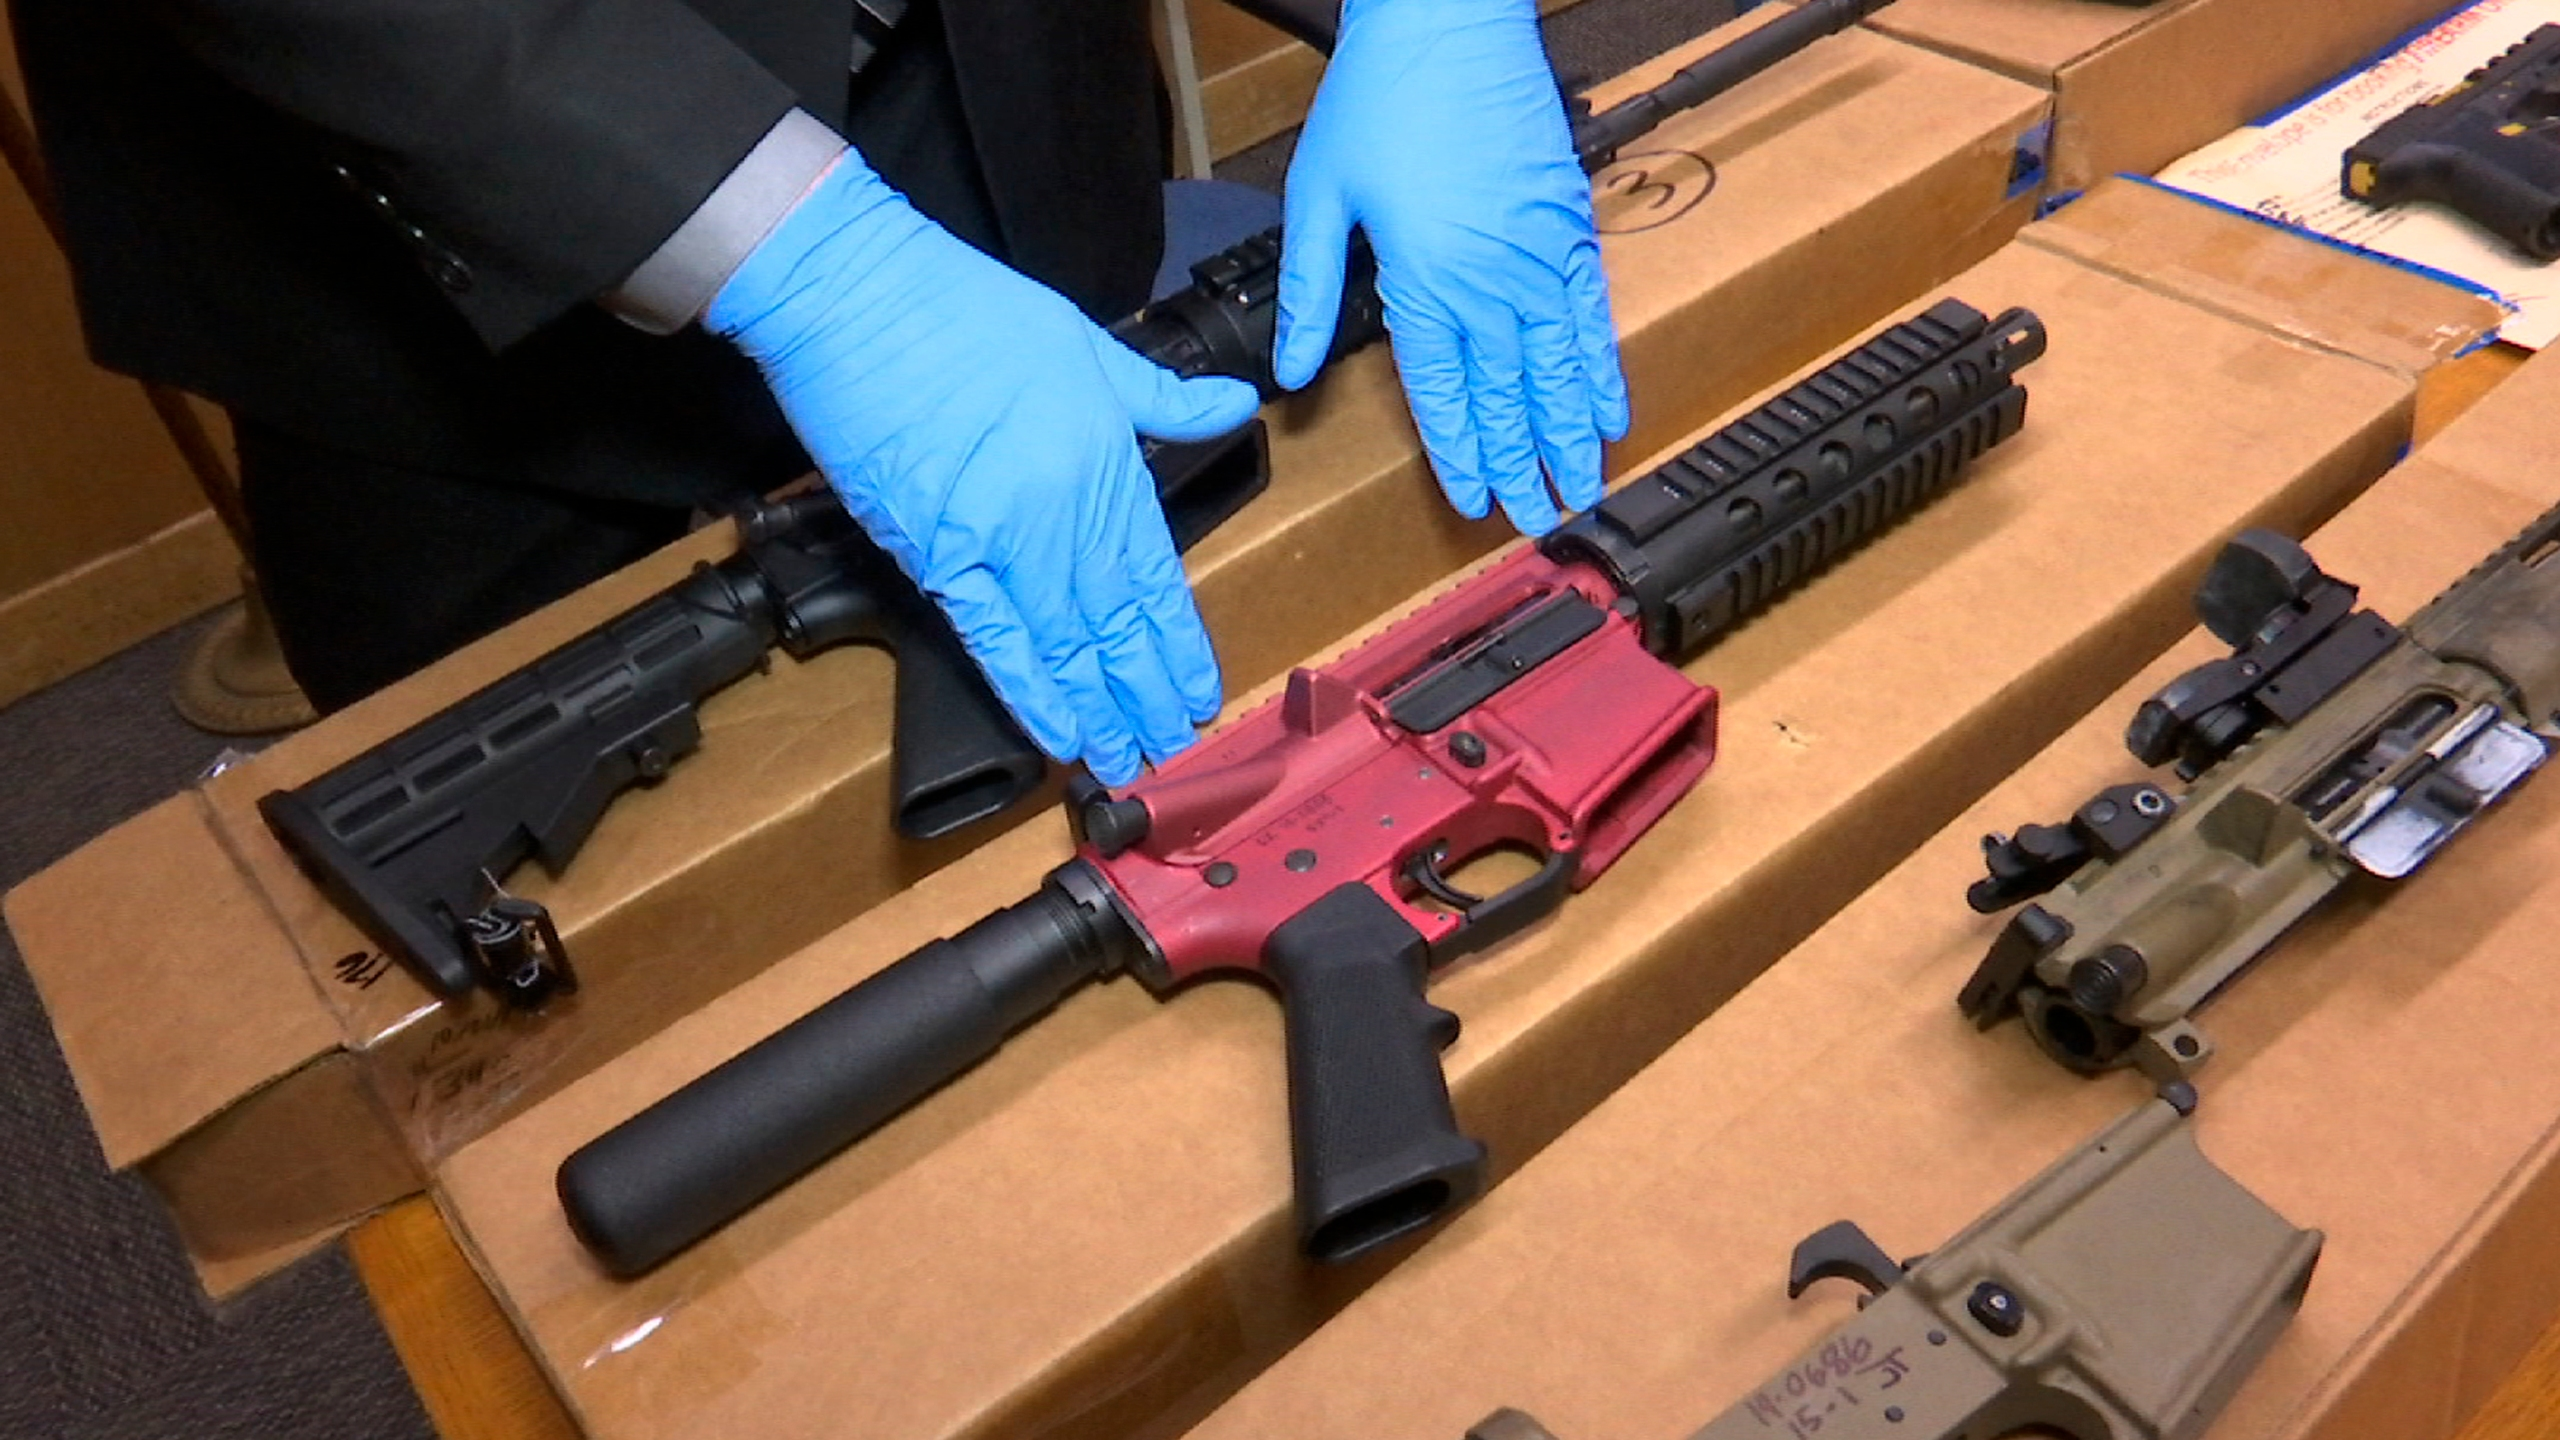 """In this Nov. 27, 2019 file photo, """"ghost guns"""" are displayed at the headquarters of the San Francisco Police Department in San Francisco. (Haven Daley / Associated Press)"""